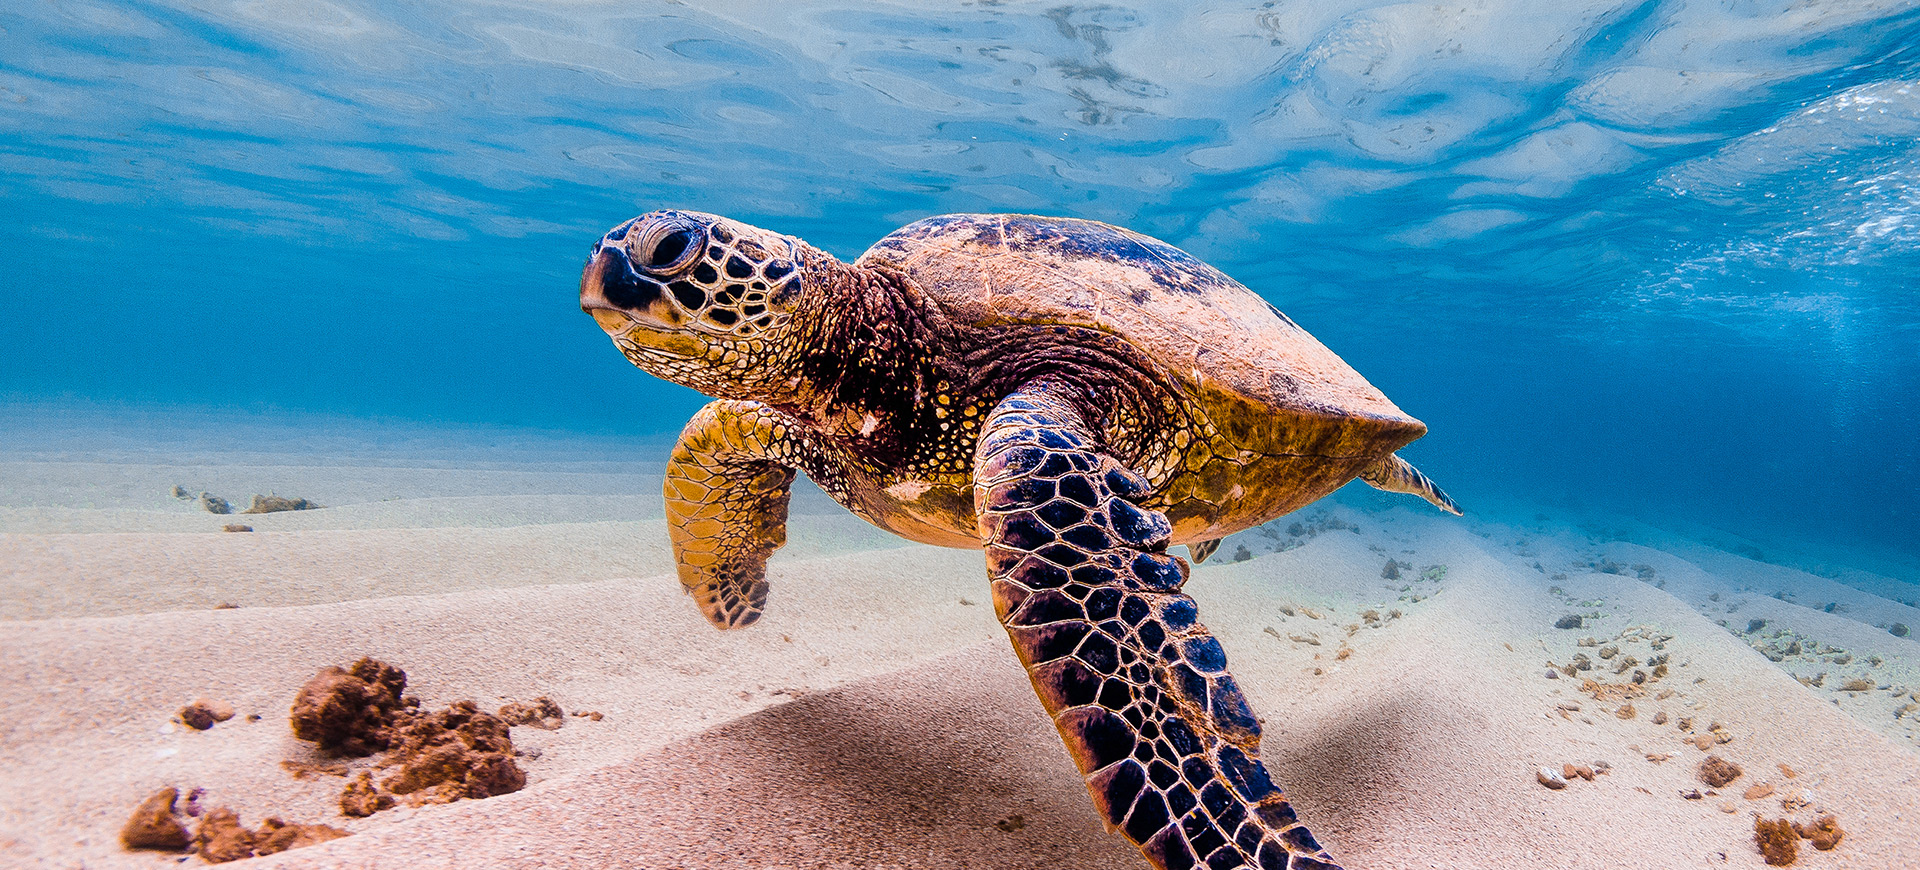 Let's Celebrate World Turtle Day!